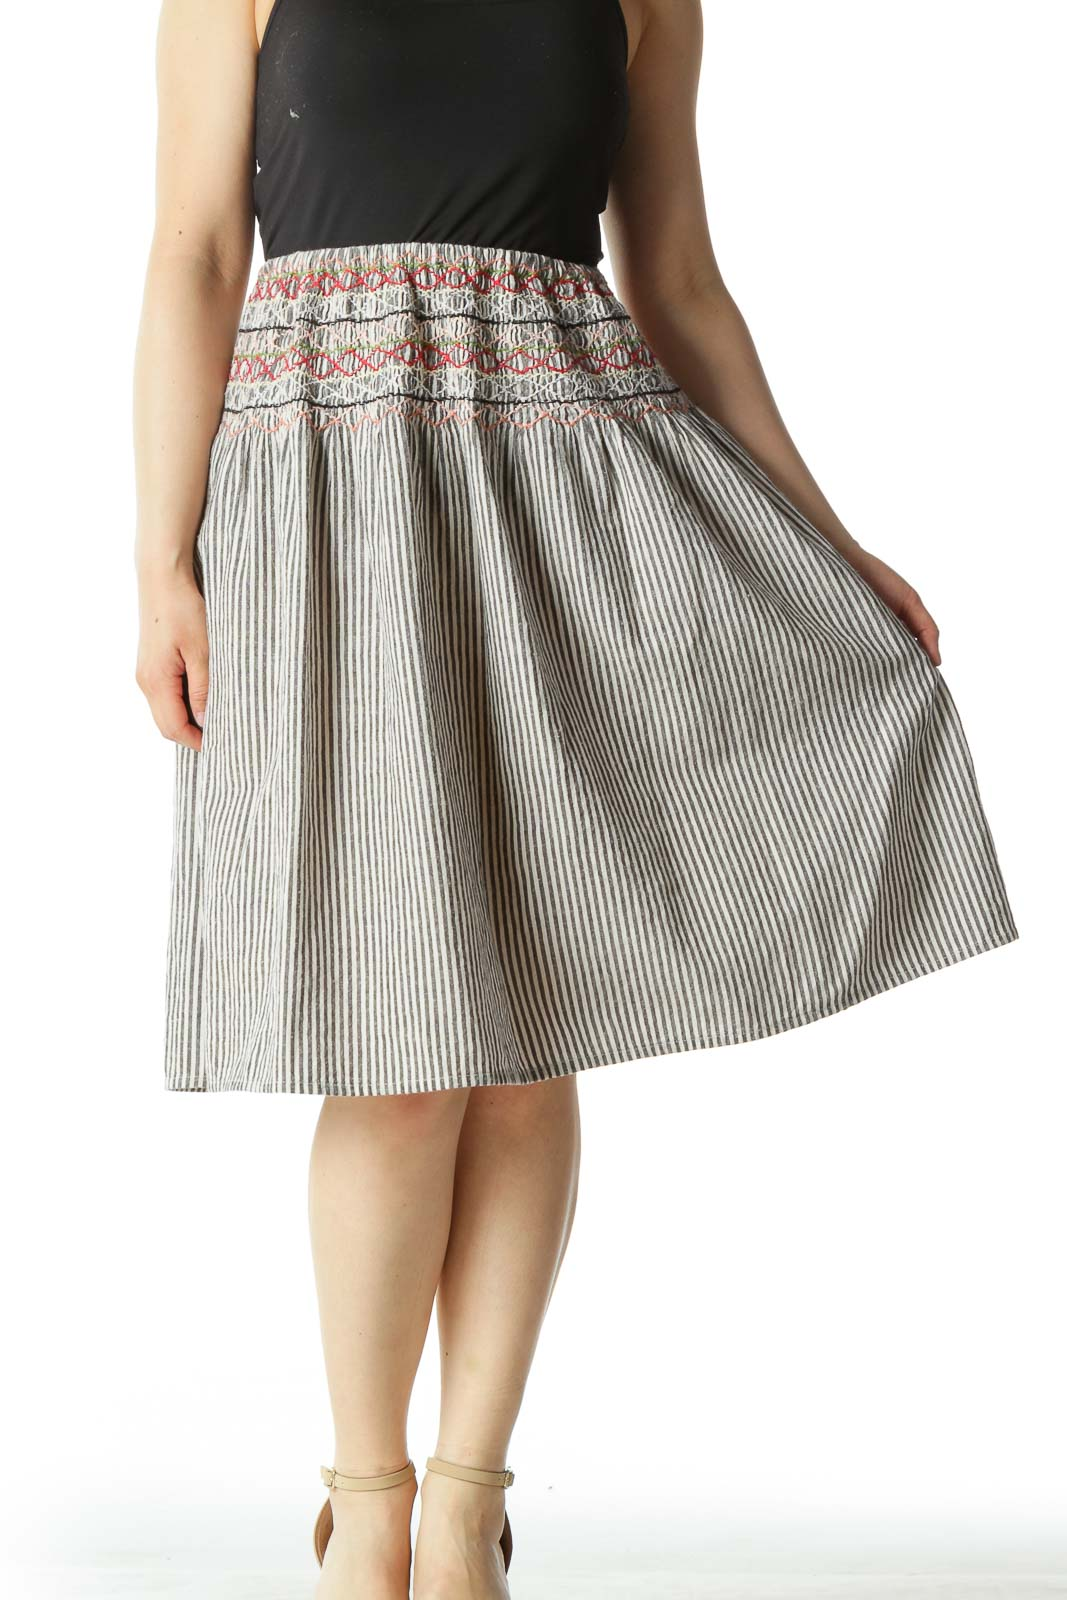 Black Striped A-Line Skirt with Multicolored Pattern Front